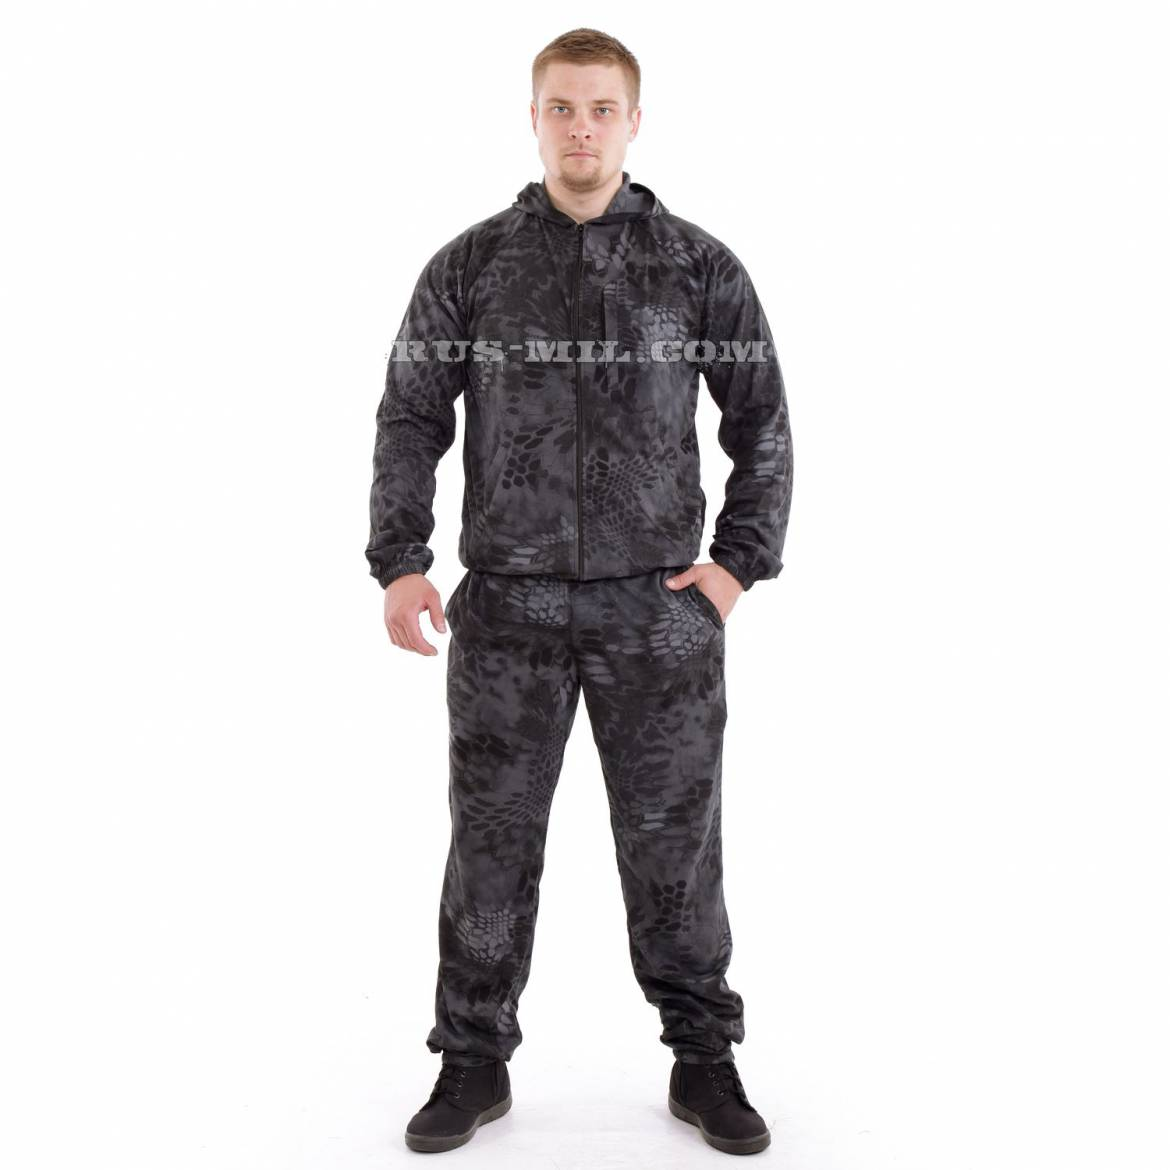 knitted-Suit-in-22Typhon22-Colour.jpg